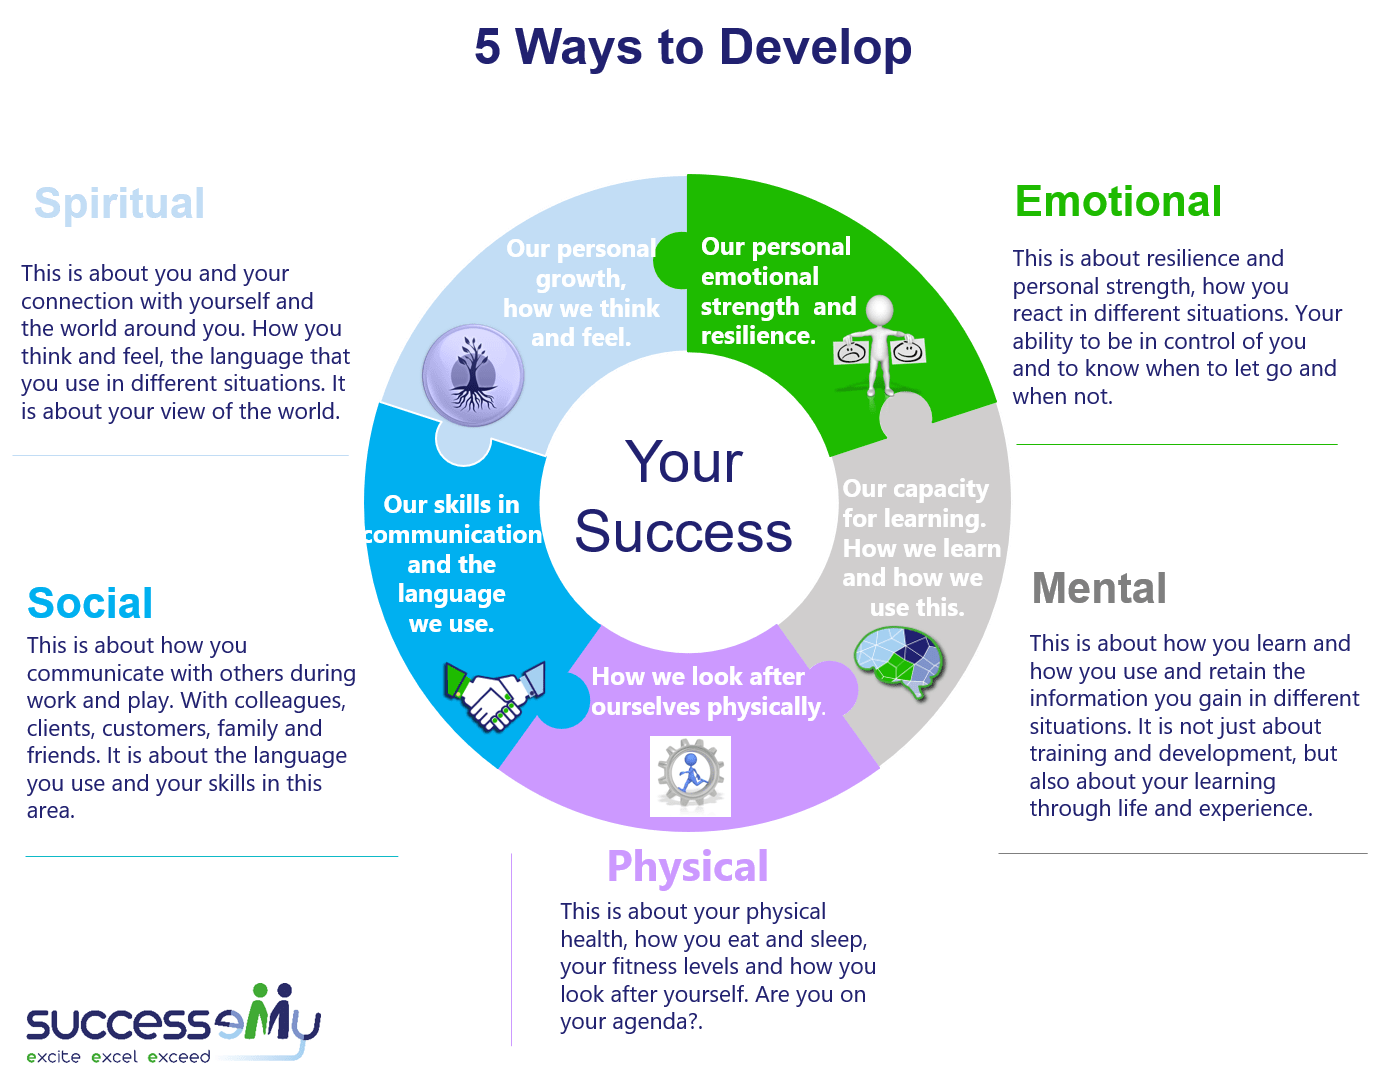 personal-and-professional-development-5-ways-to-develop